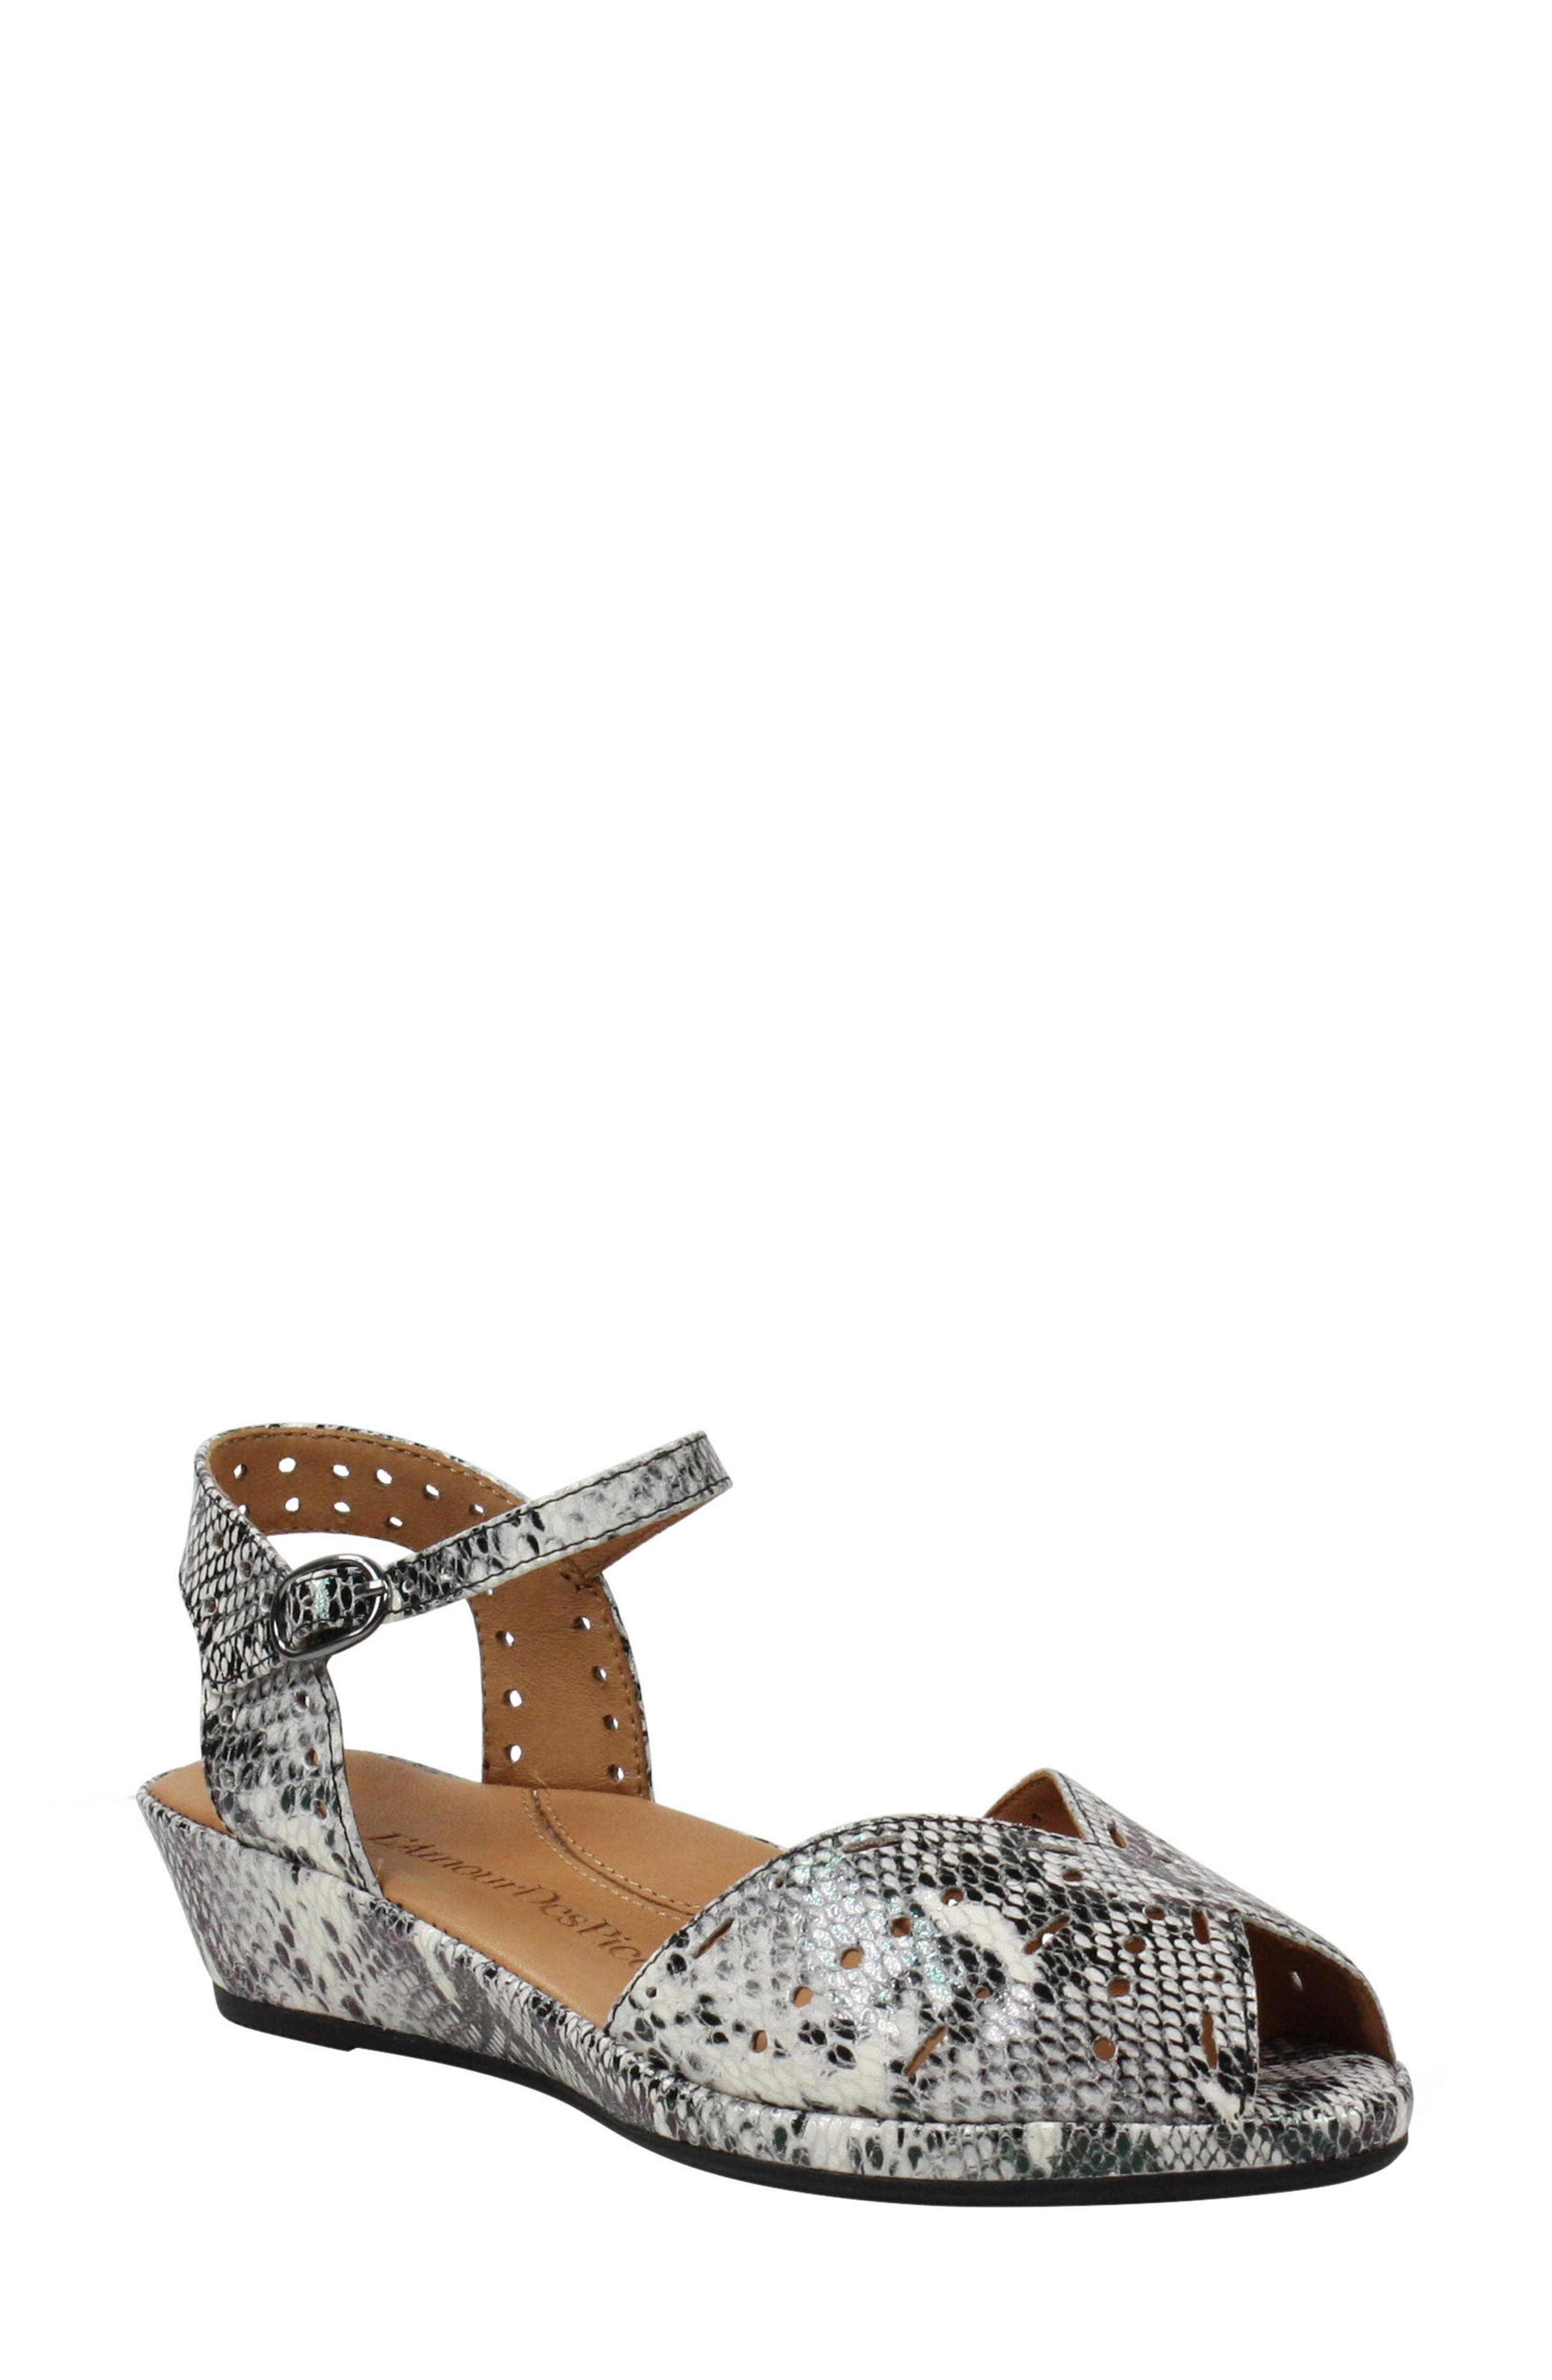 Punched-out perforations add pretty texture to a quarter-strap wedge sandal made with a comfortable memory foam-cushioned footbed. Style Name:L\\\'Amour Des Pieds Brenn Wedge Sandal (Women). Style Number: 6010496. Available in stores.